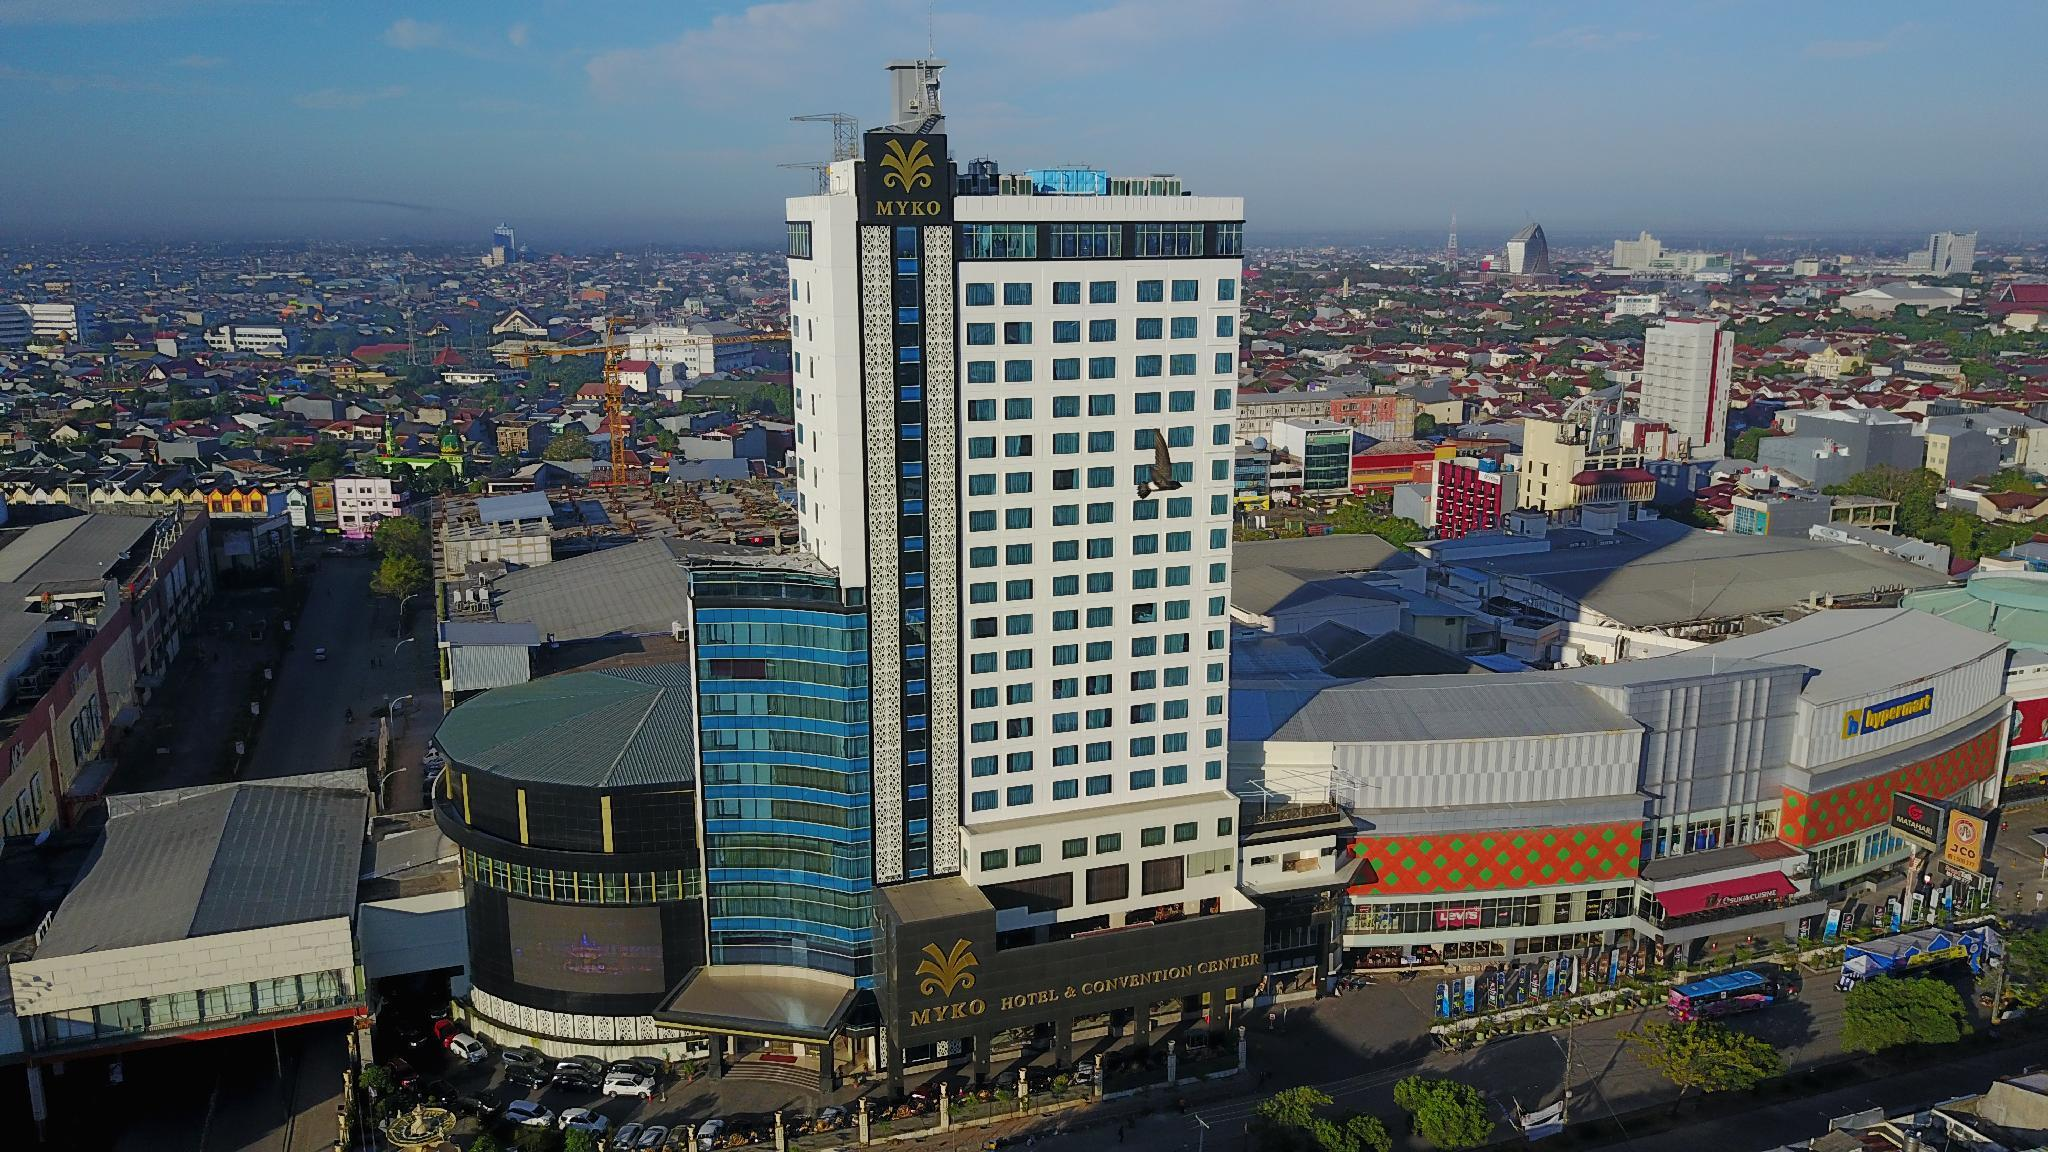 Myko Hotel and Convention Center Makassar